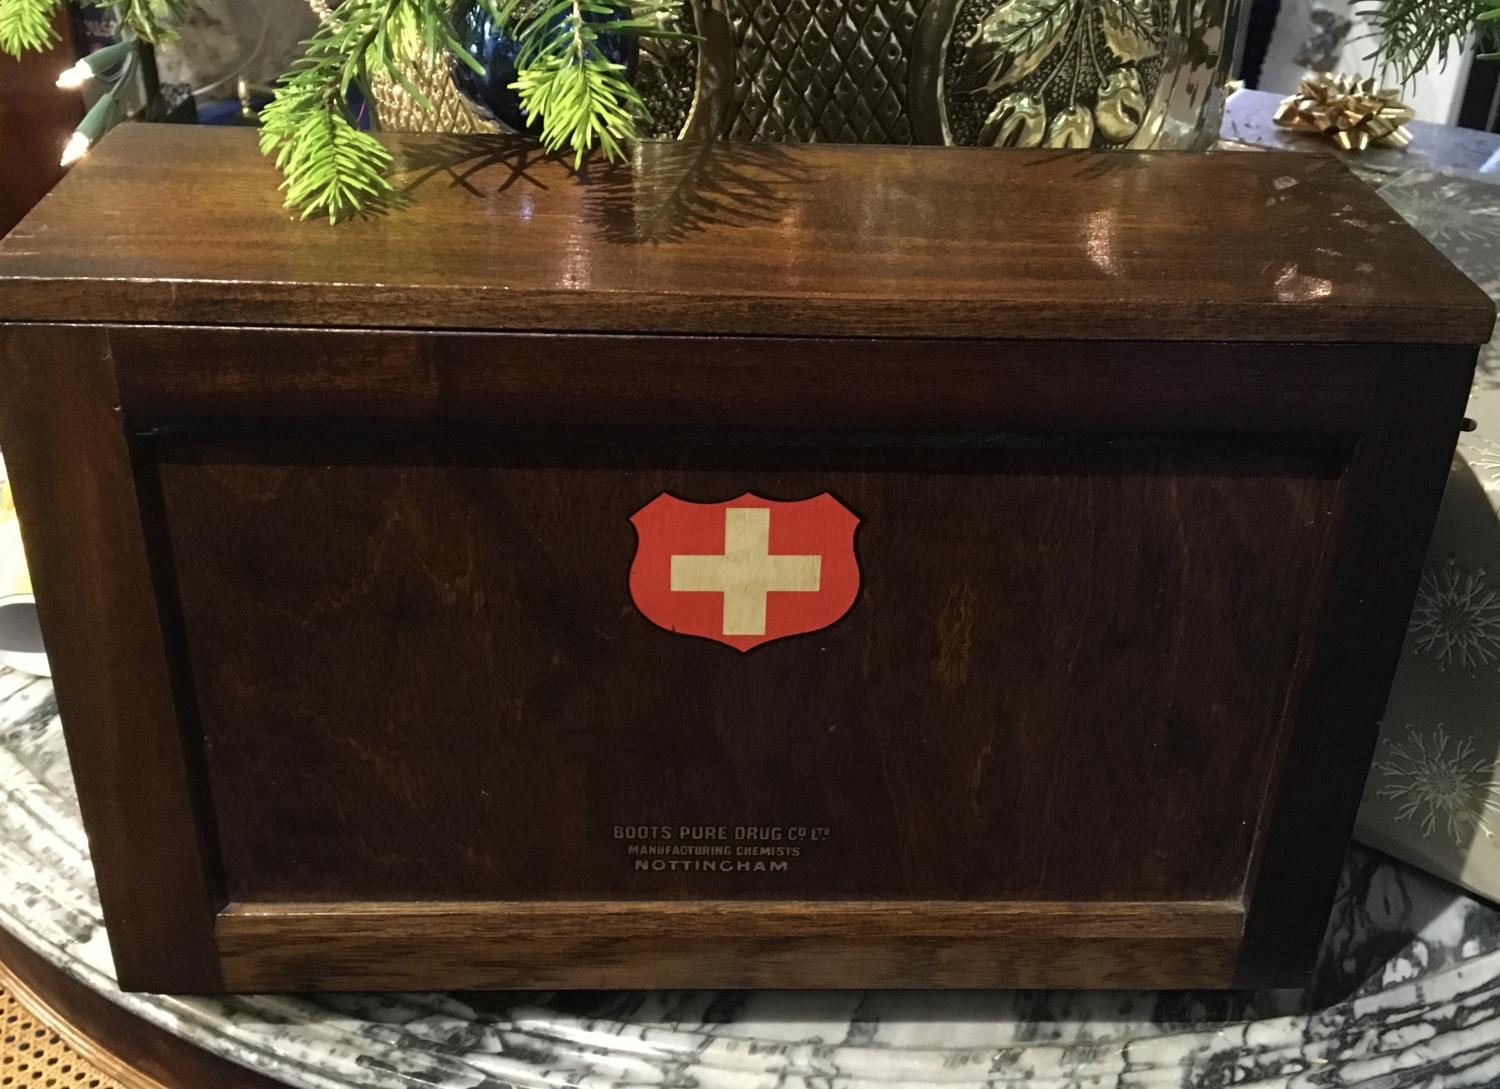 'Boots' First Aid Box